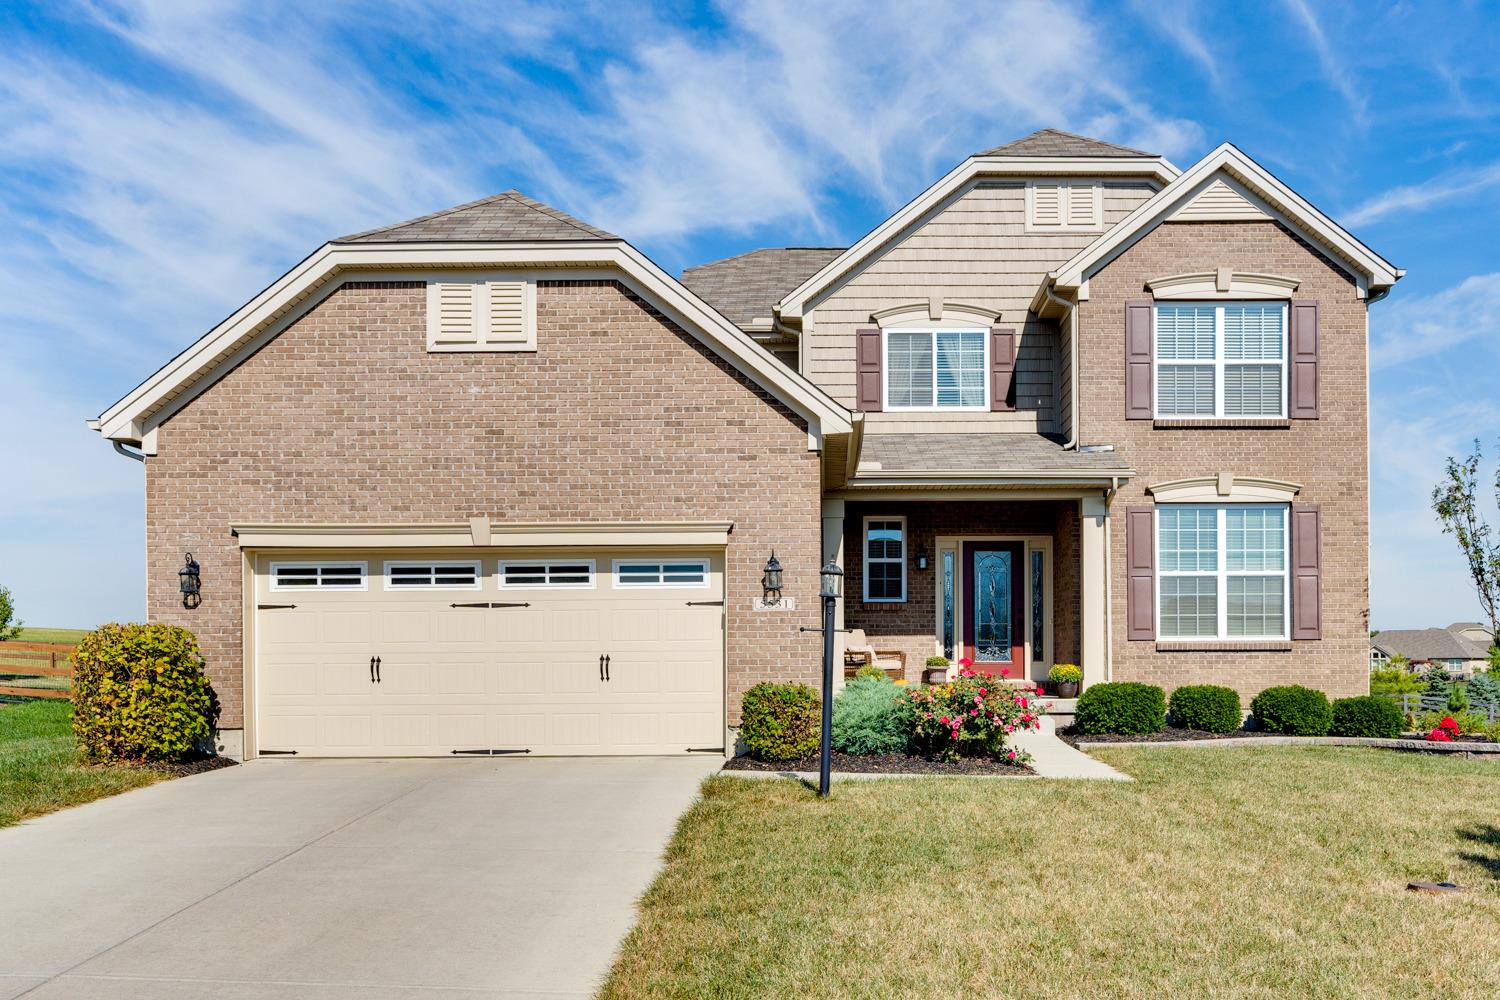 Property for sale at 5531 Oakview Terrace, Liberty Twp,  Ohio 45011